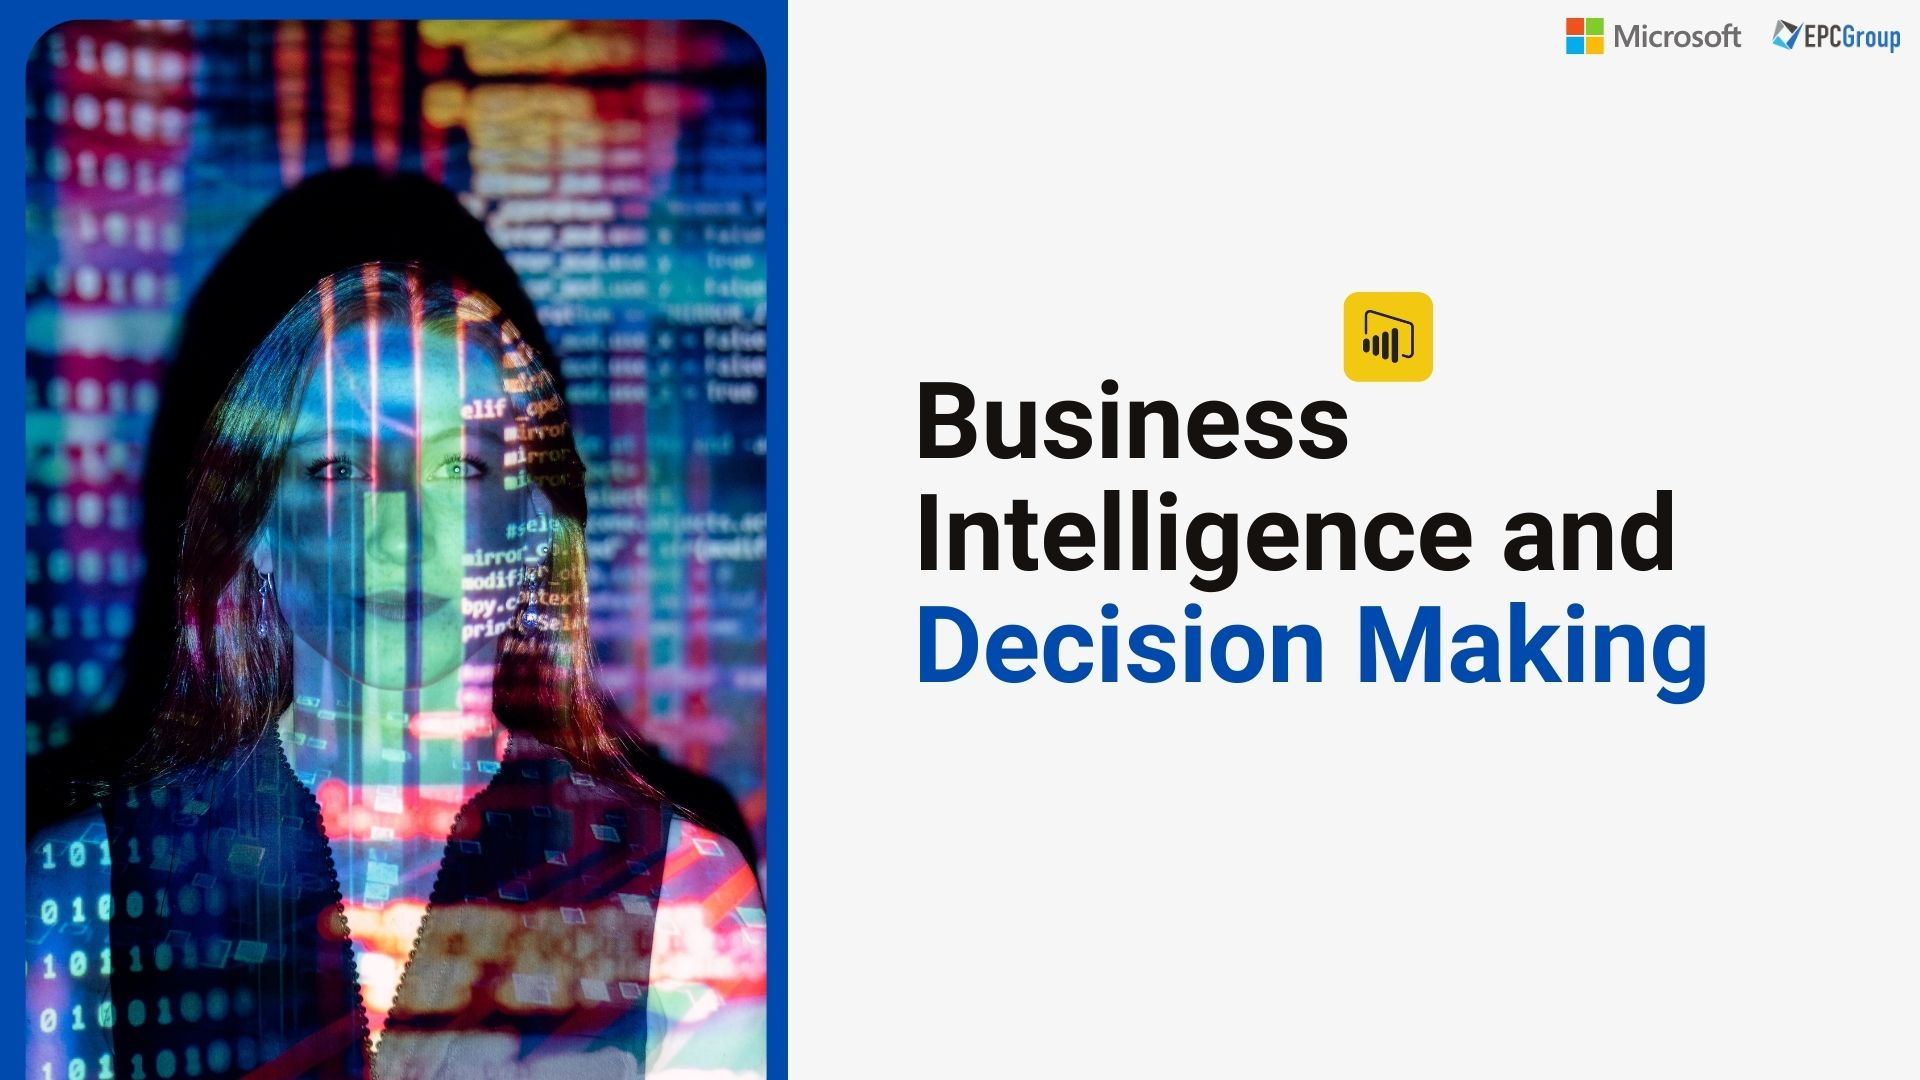 Relation Between Business Intelligence and Decision Making For Reducing Risk - thumb image